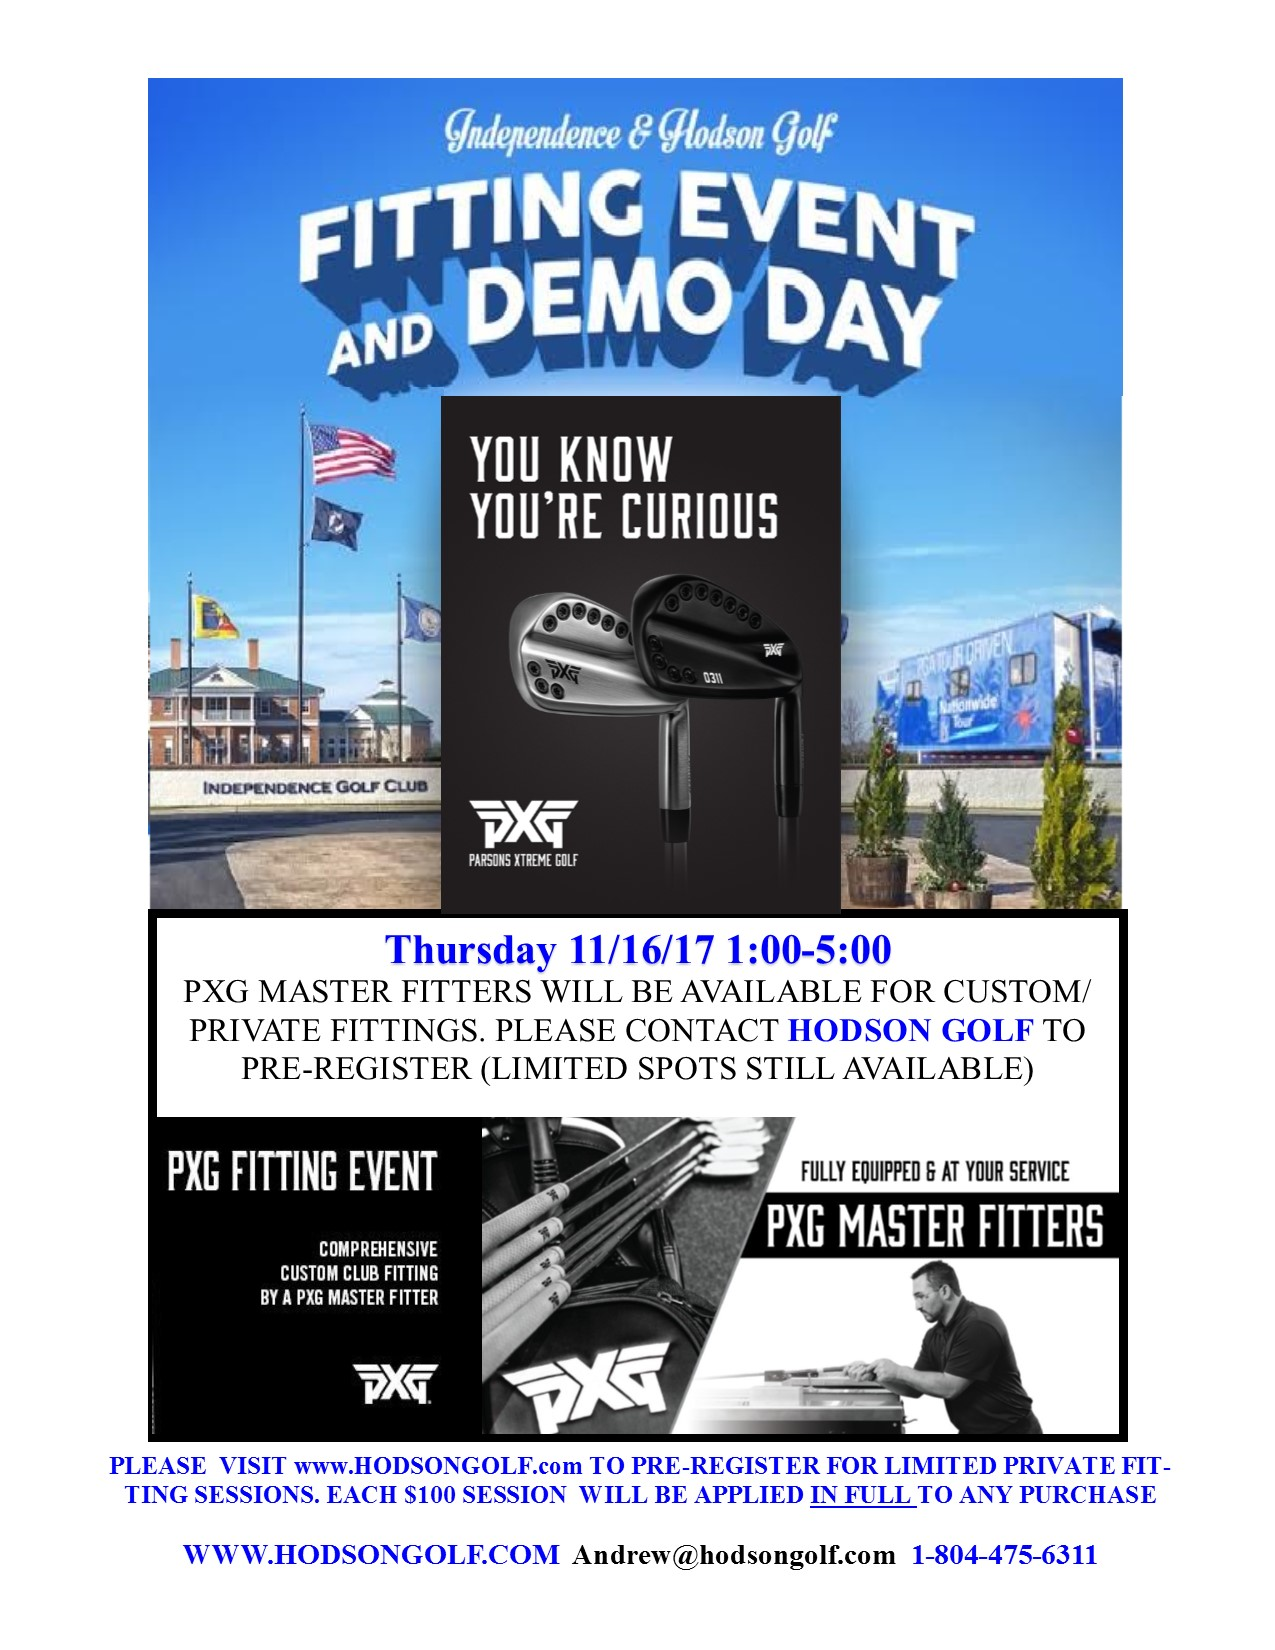 You are currently viewing Hodson Golf & PXG Master Fitting Event Thursday 11/16/17 at Independence GC